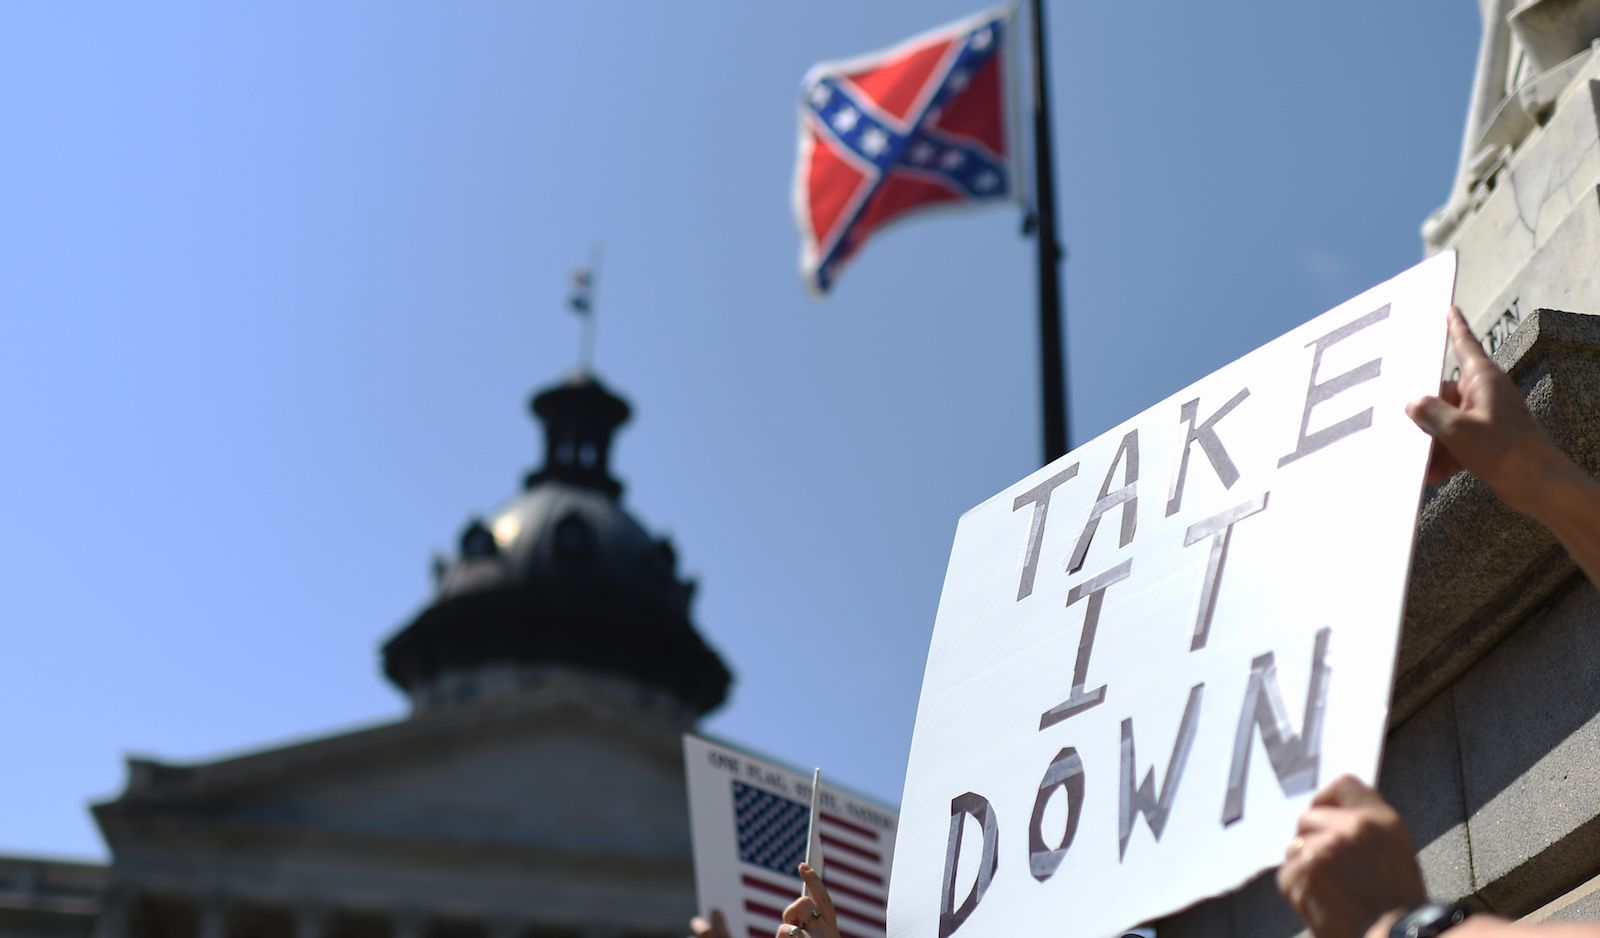 Protesting against the Confederate flag in South Carolina